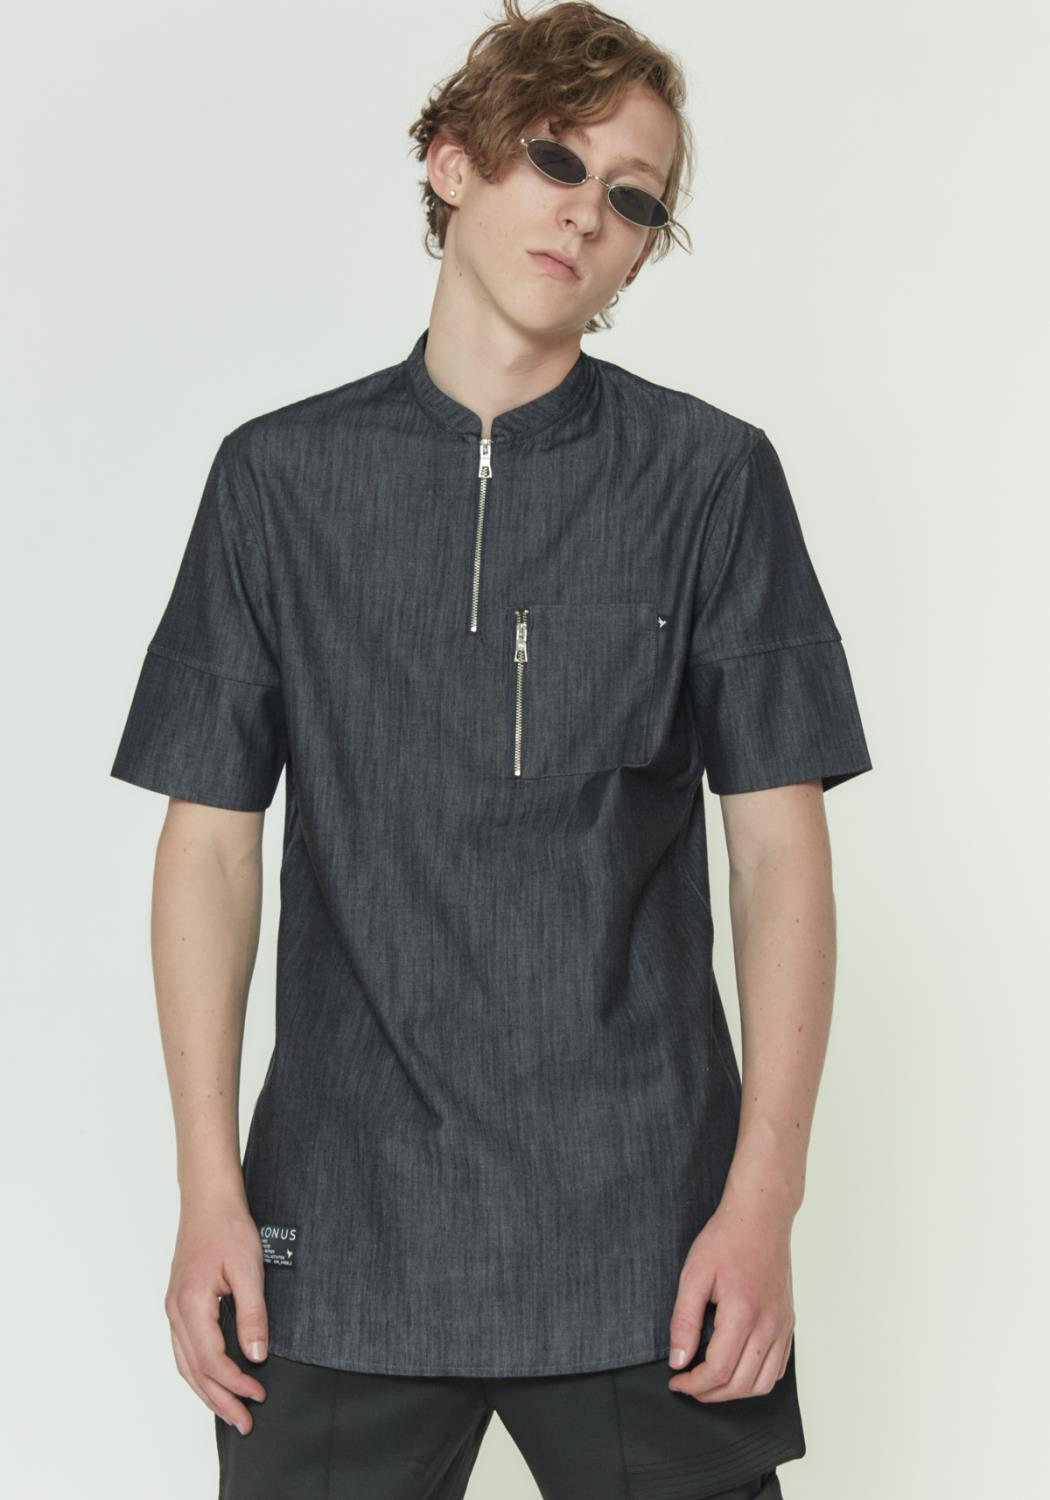 SHORT SLEEVE CHAMBRAY SHIRT WITH HALF ZIP CLOSURE